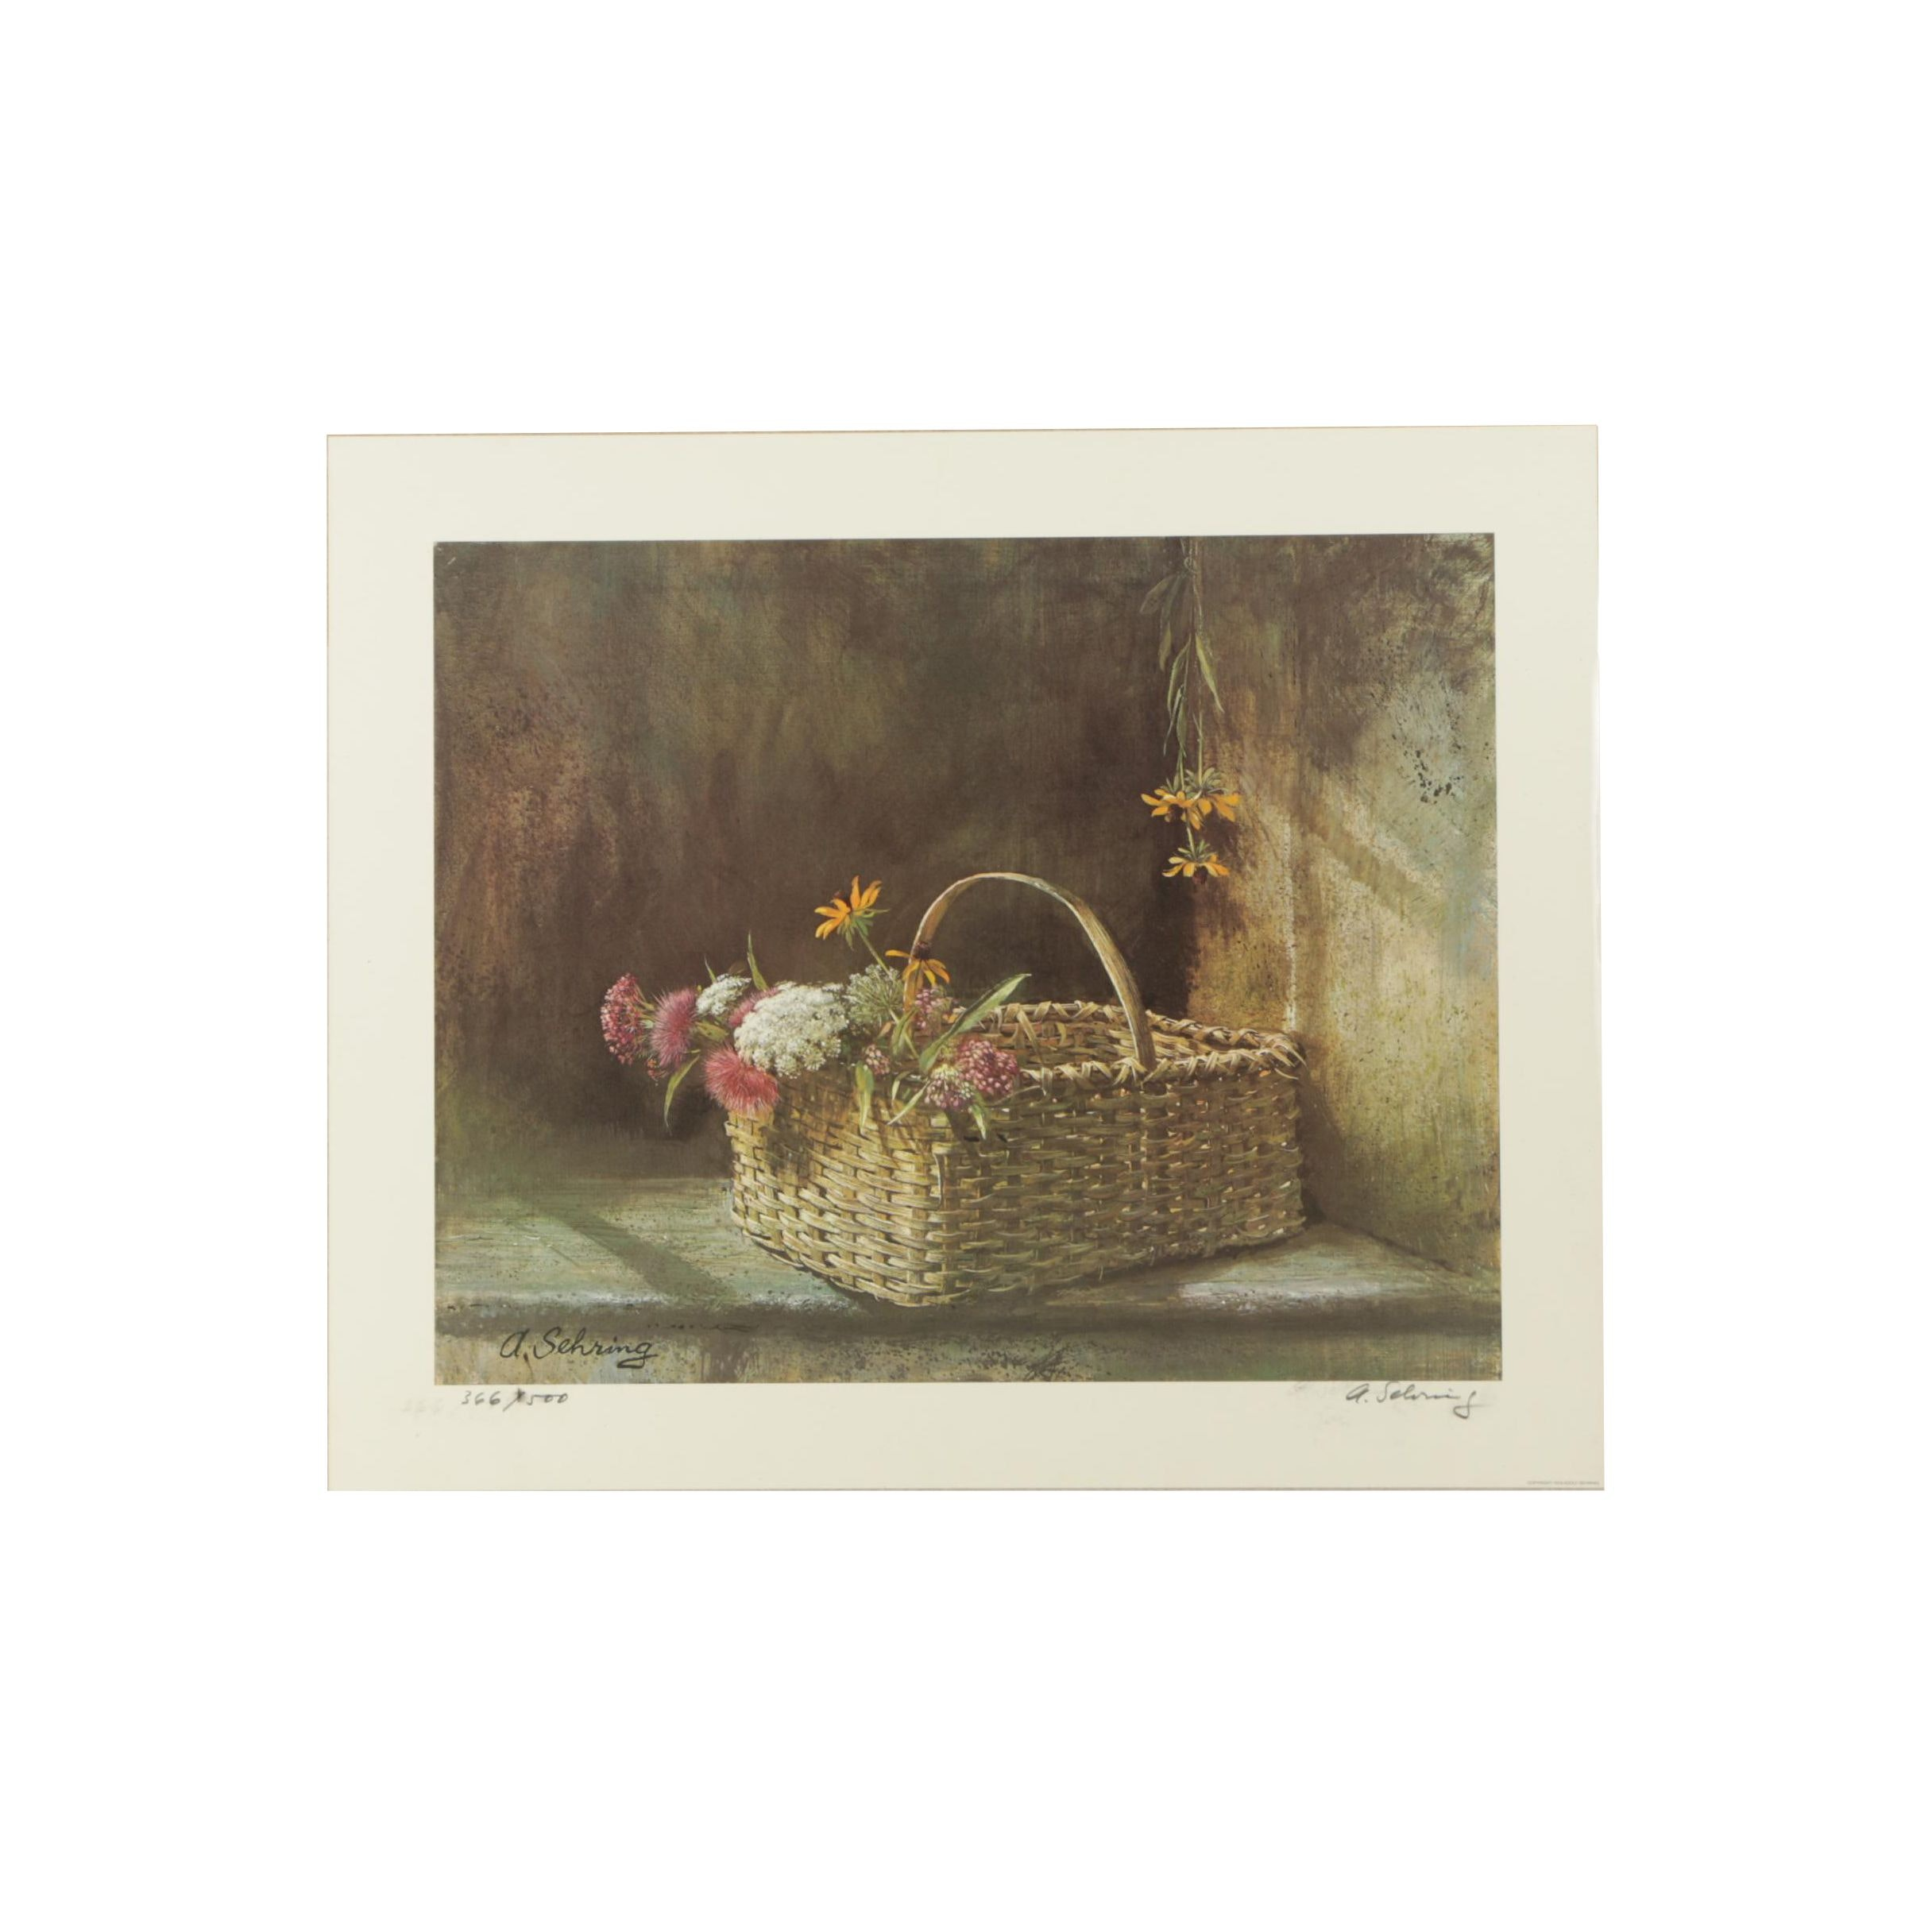 Adolf Sehring Limited Edition Reproduction Print of a Basket with Flowers